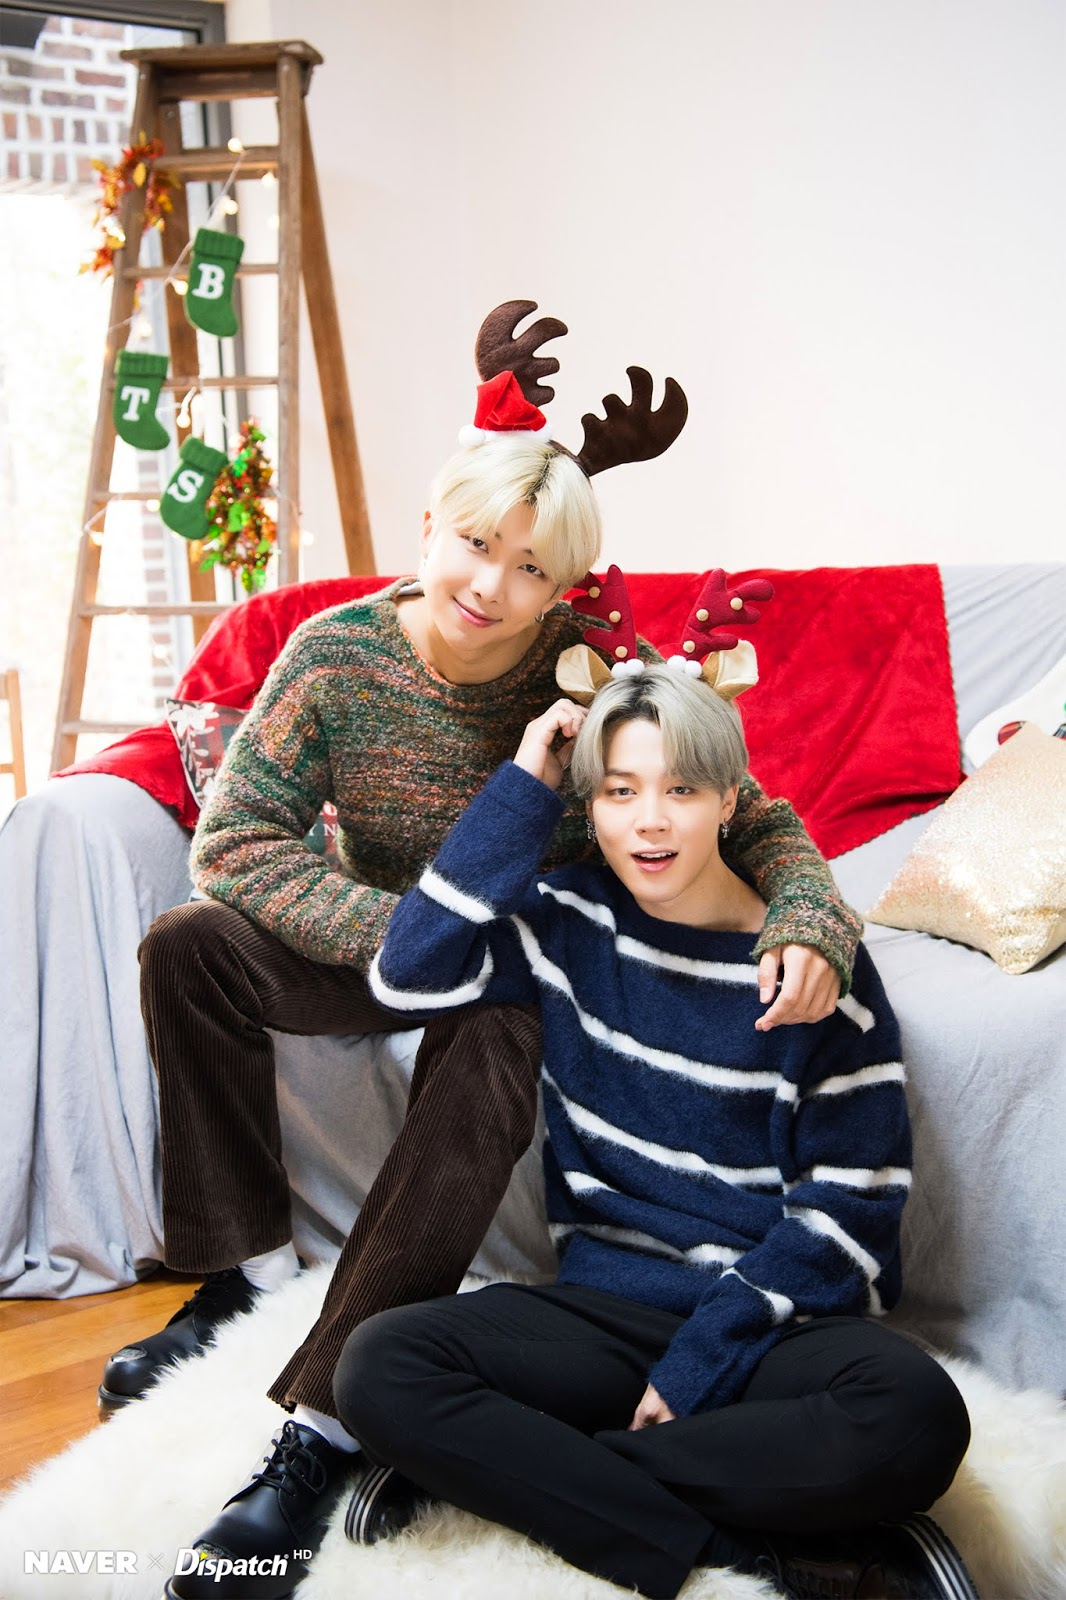 Naver X Dispatch Bts Christmas Special 2019 Photoshoot Circuits Of Fever